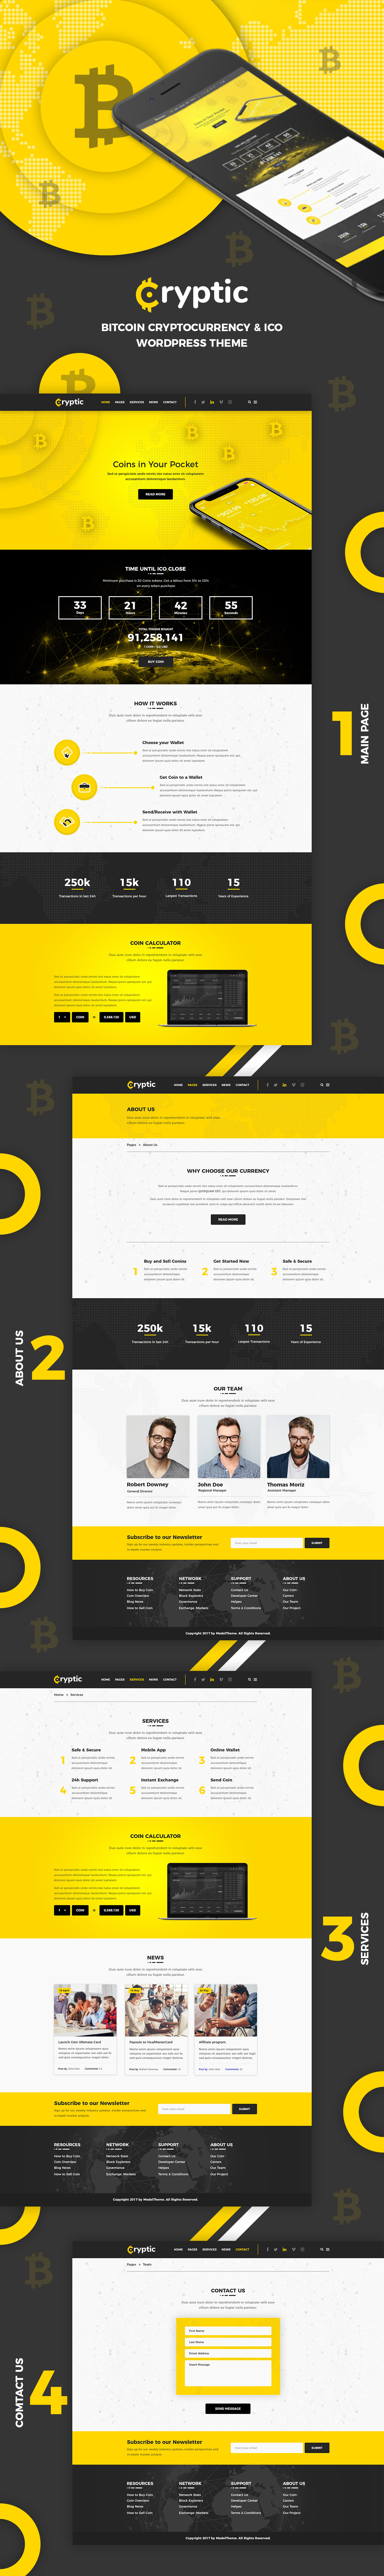 Cryptic - Cryptocurrency WordPress Theme - 6